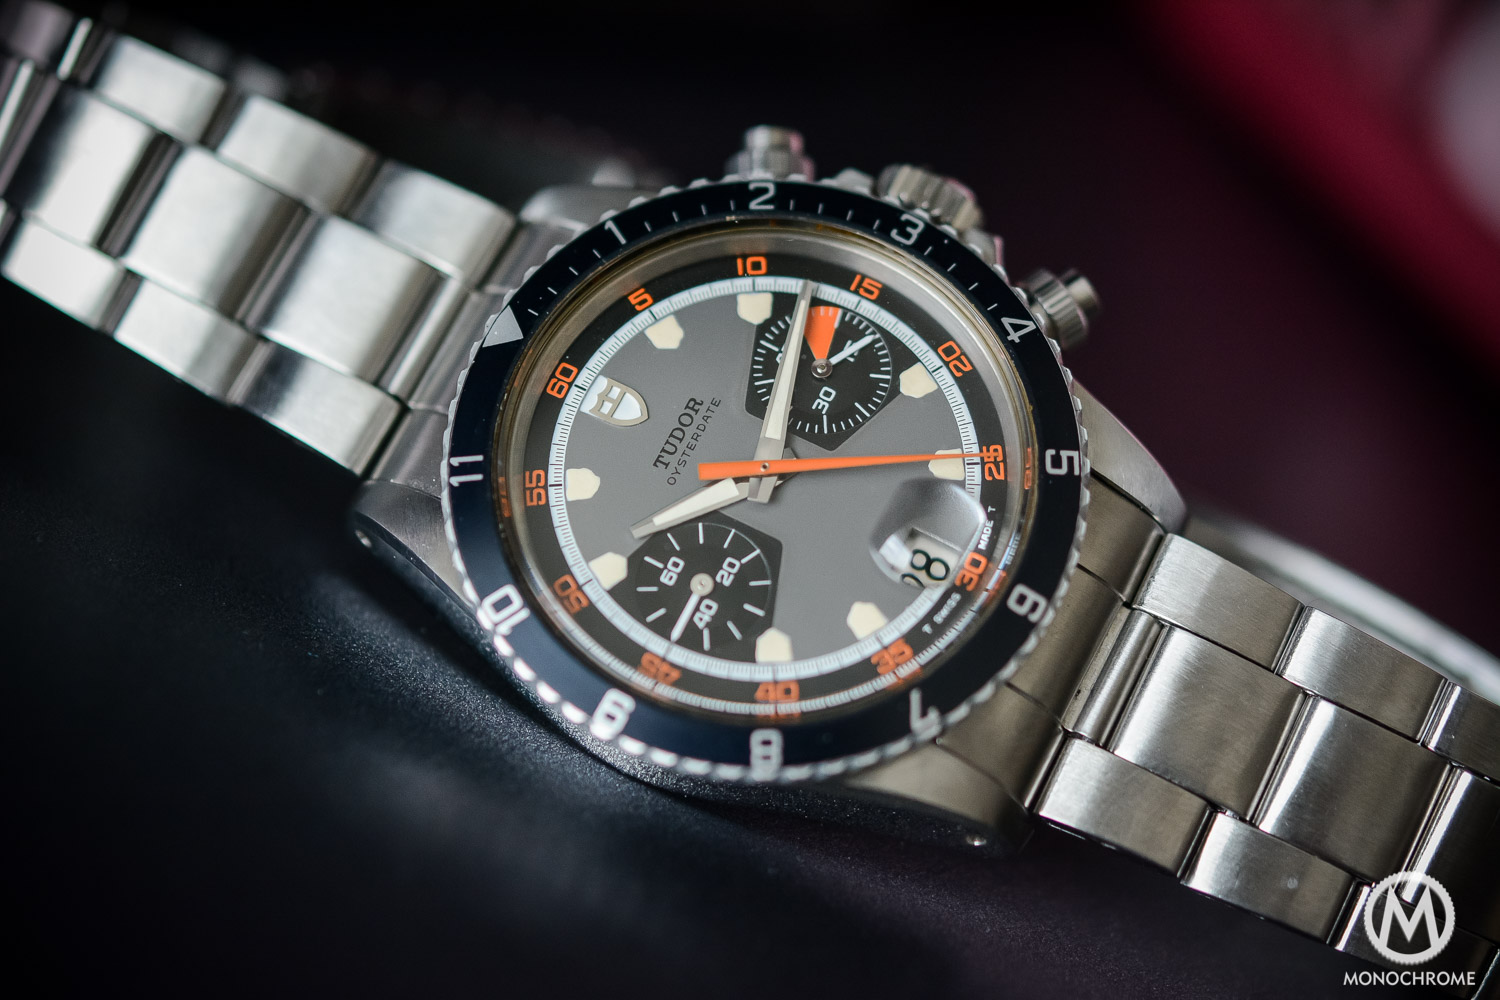 Tudor and its Heritage – The 1970s Chronographs and the Tudor Heritage Chrono